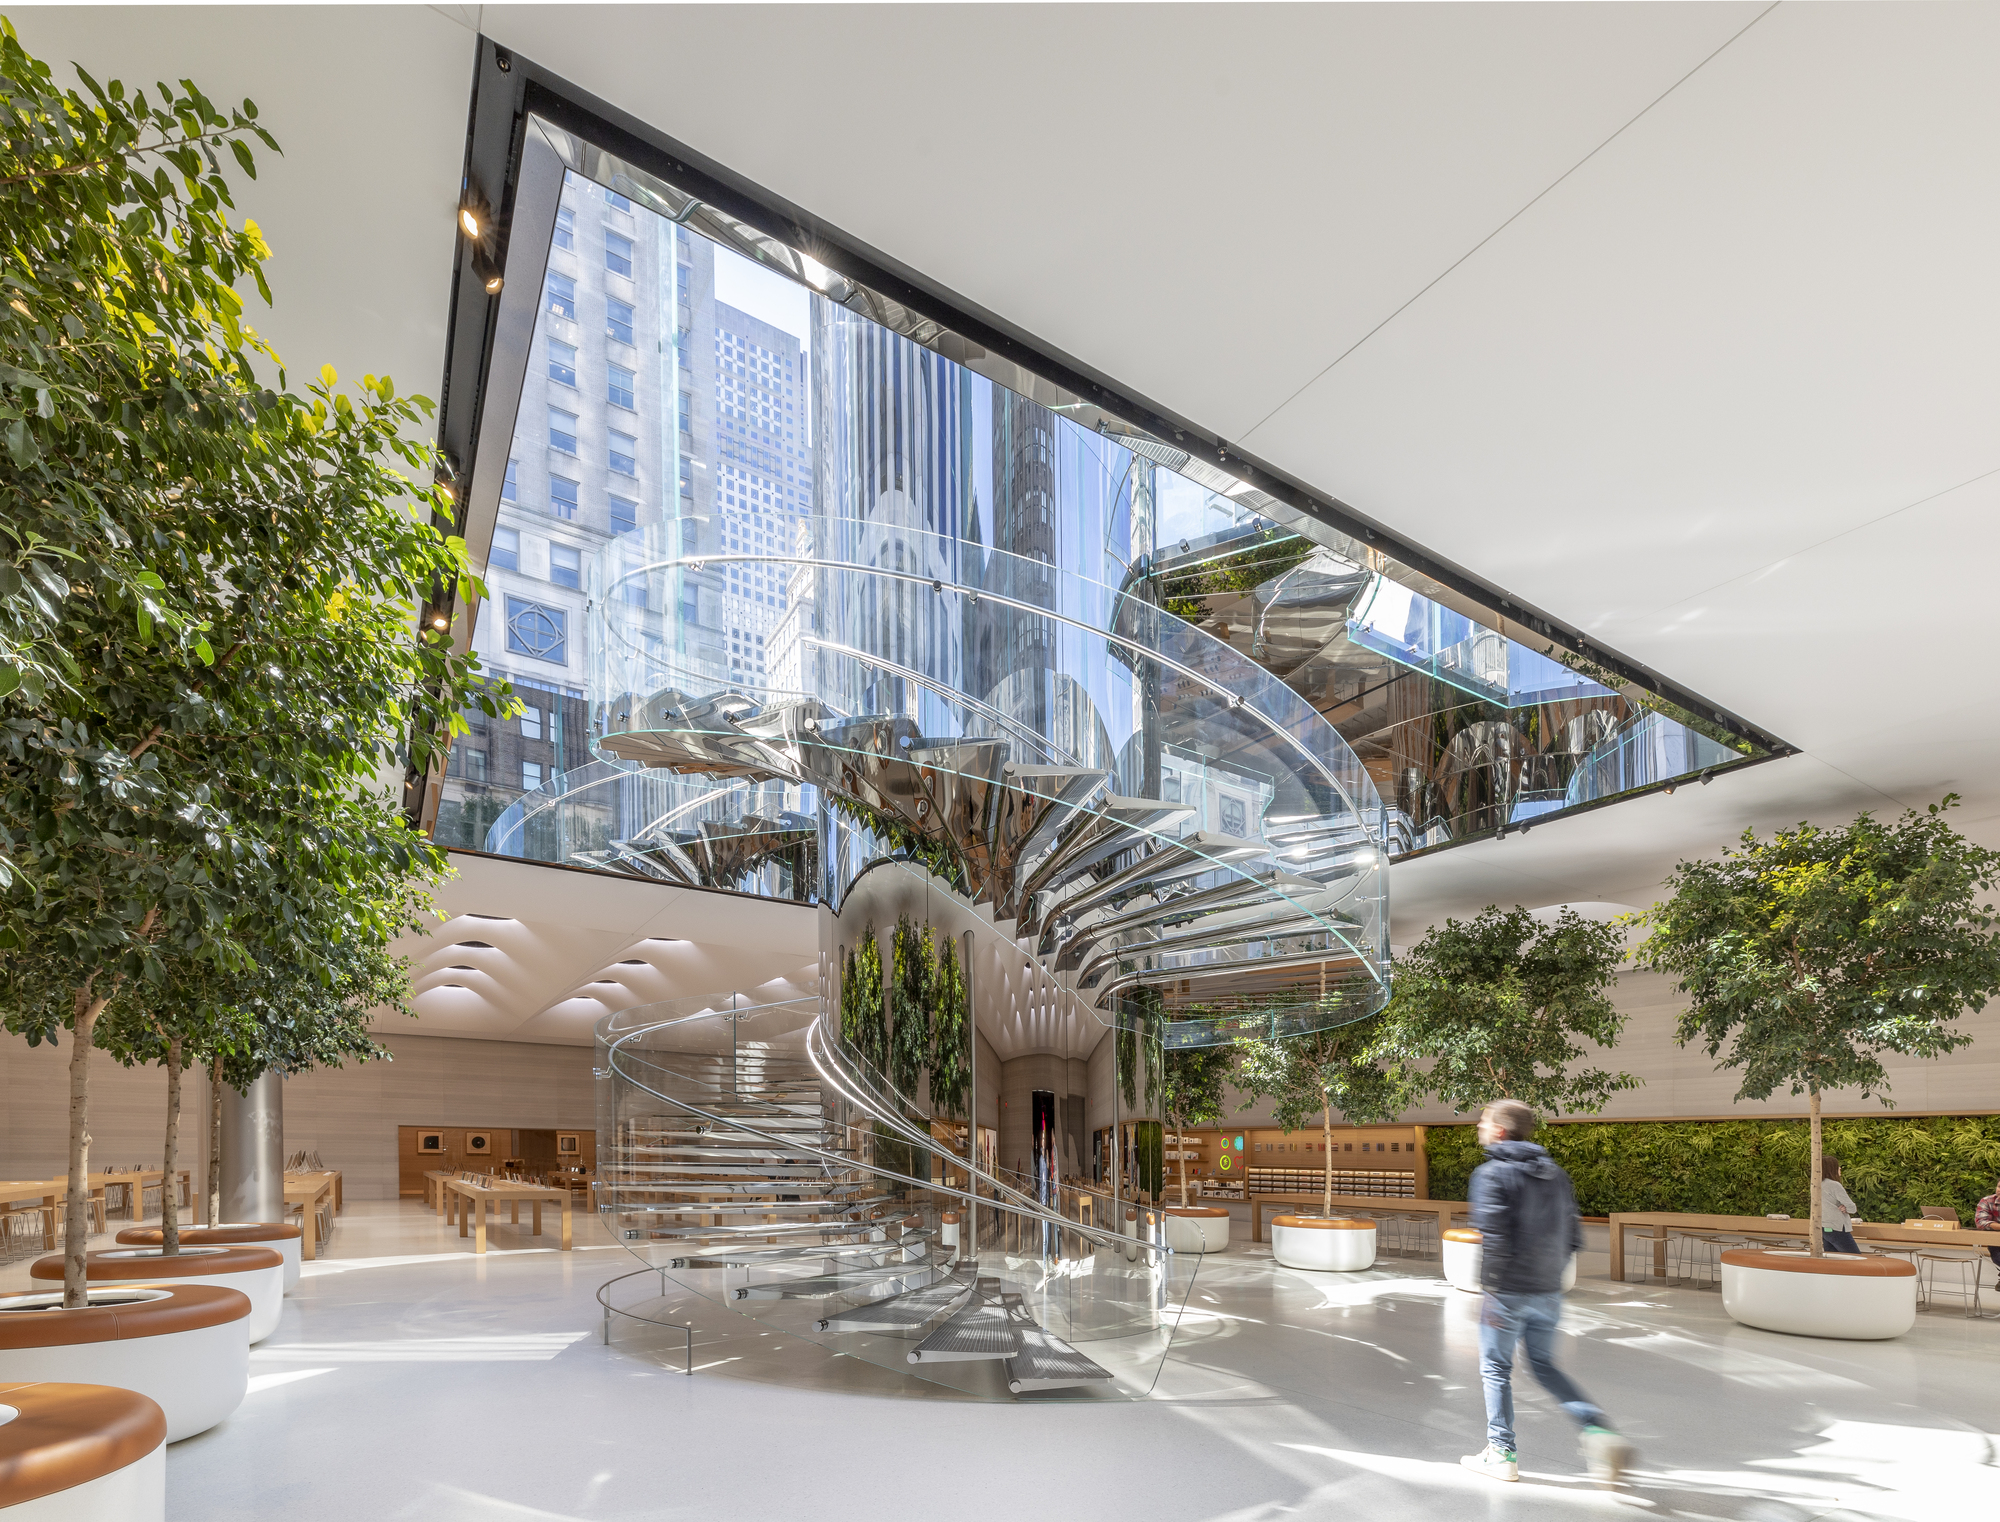 Gallery of Apple Store Fifth Avenue / Foster + Partners - 3